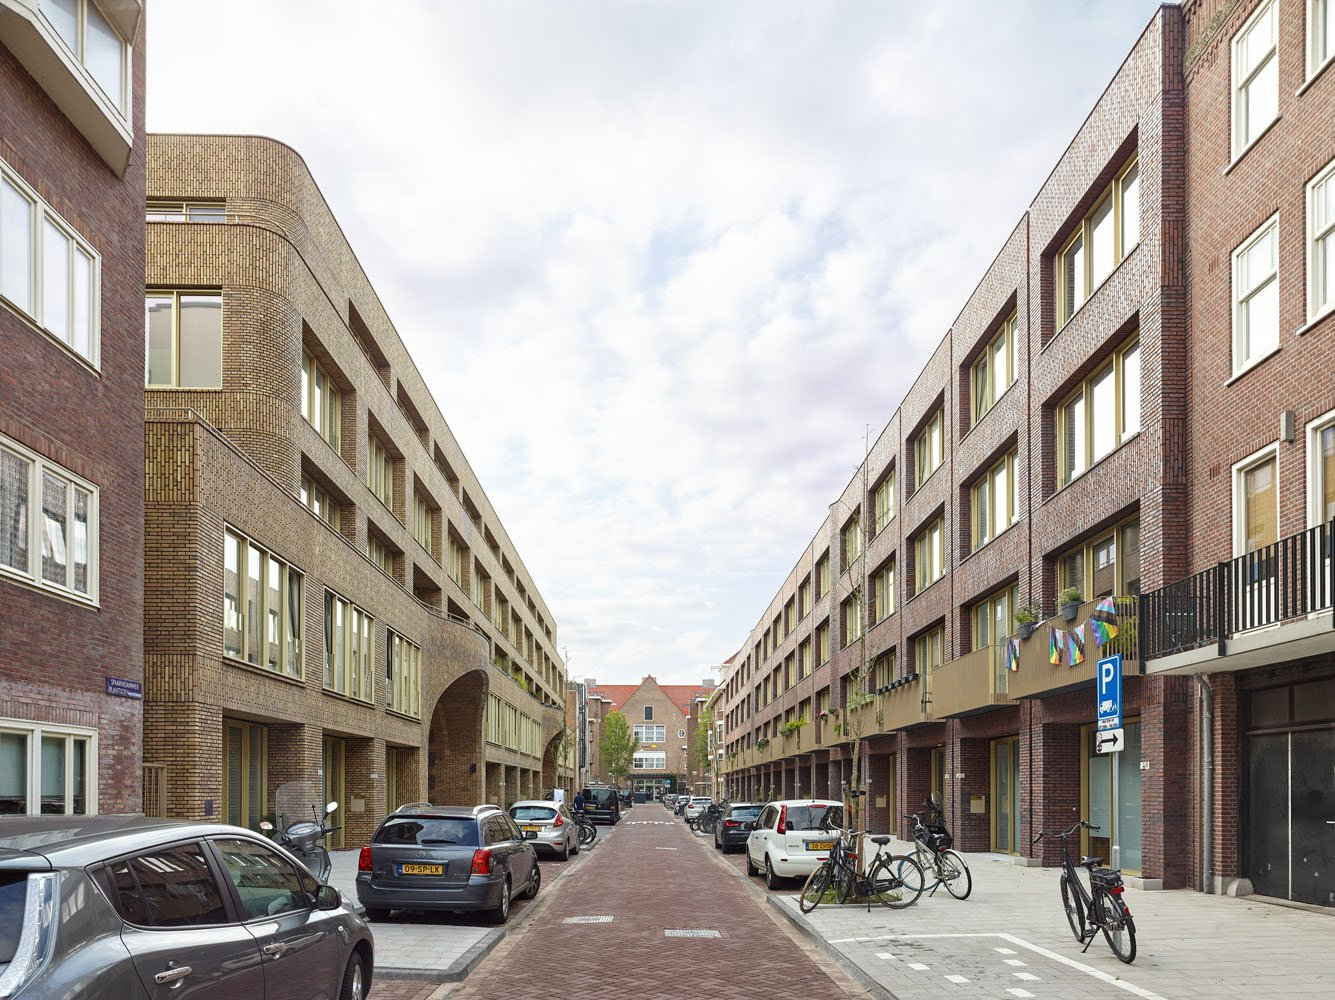 the street view of the project